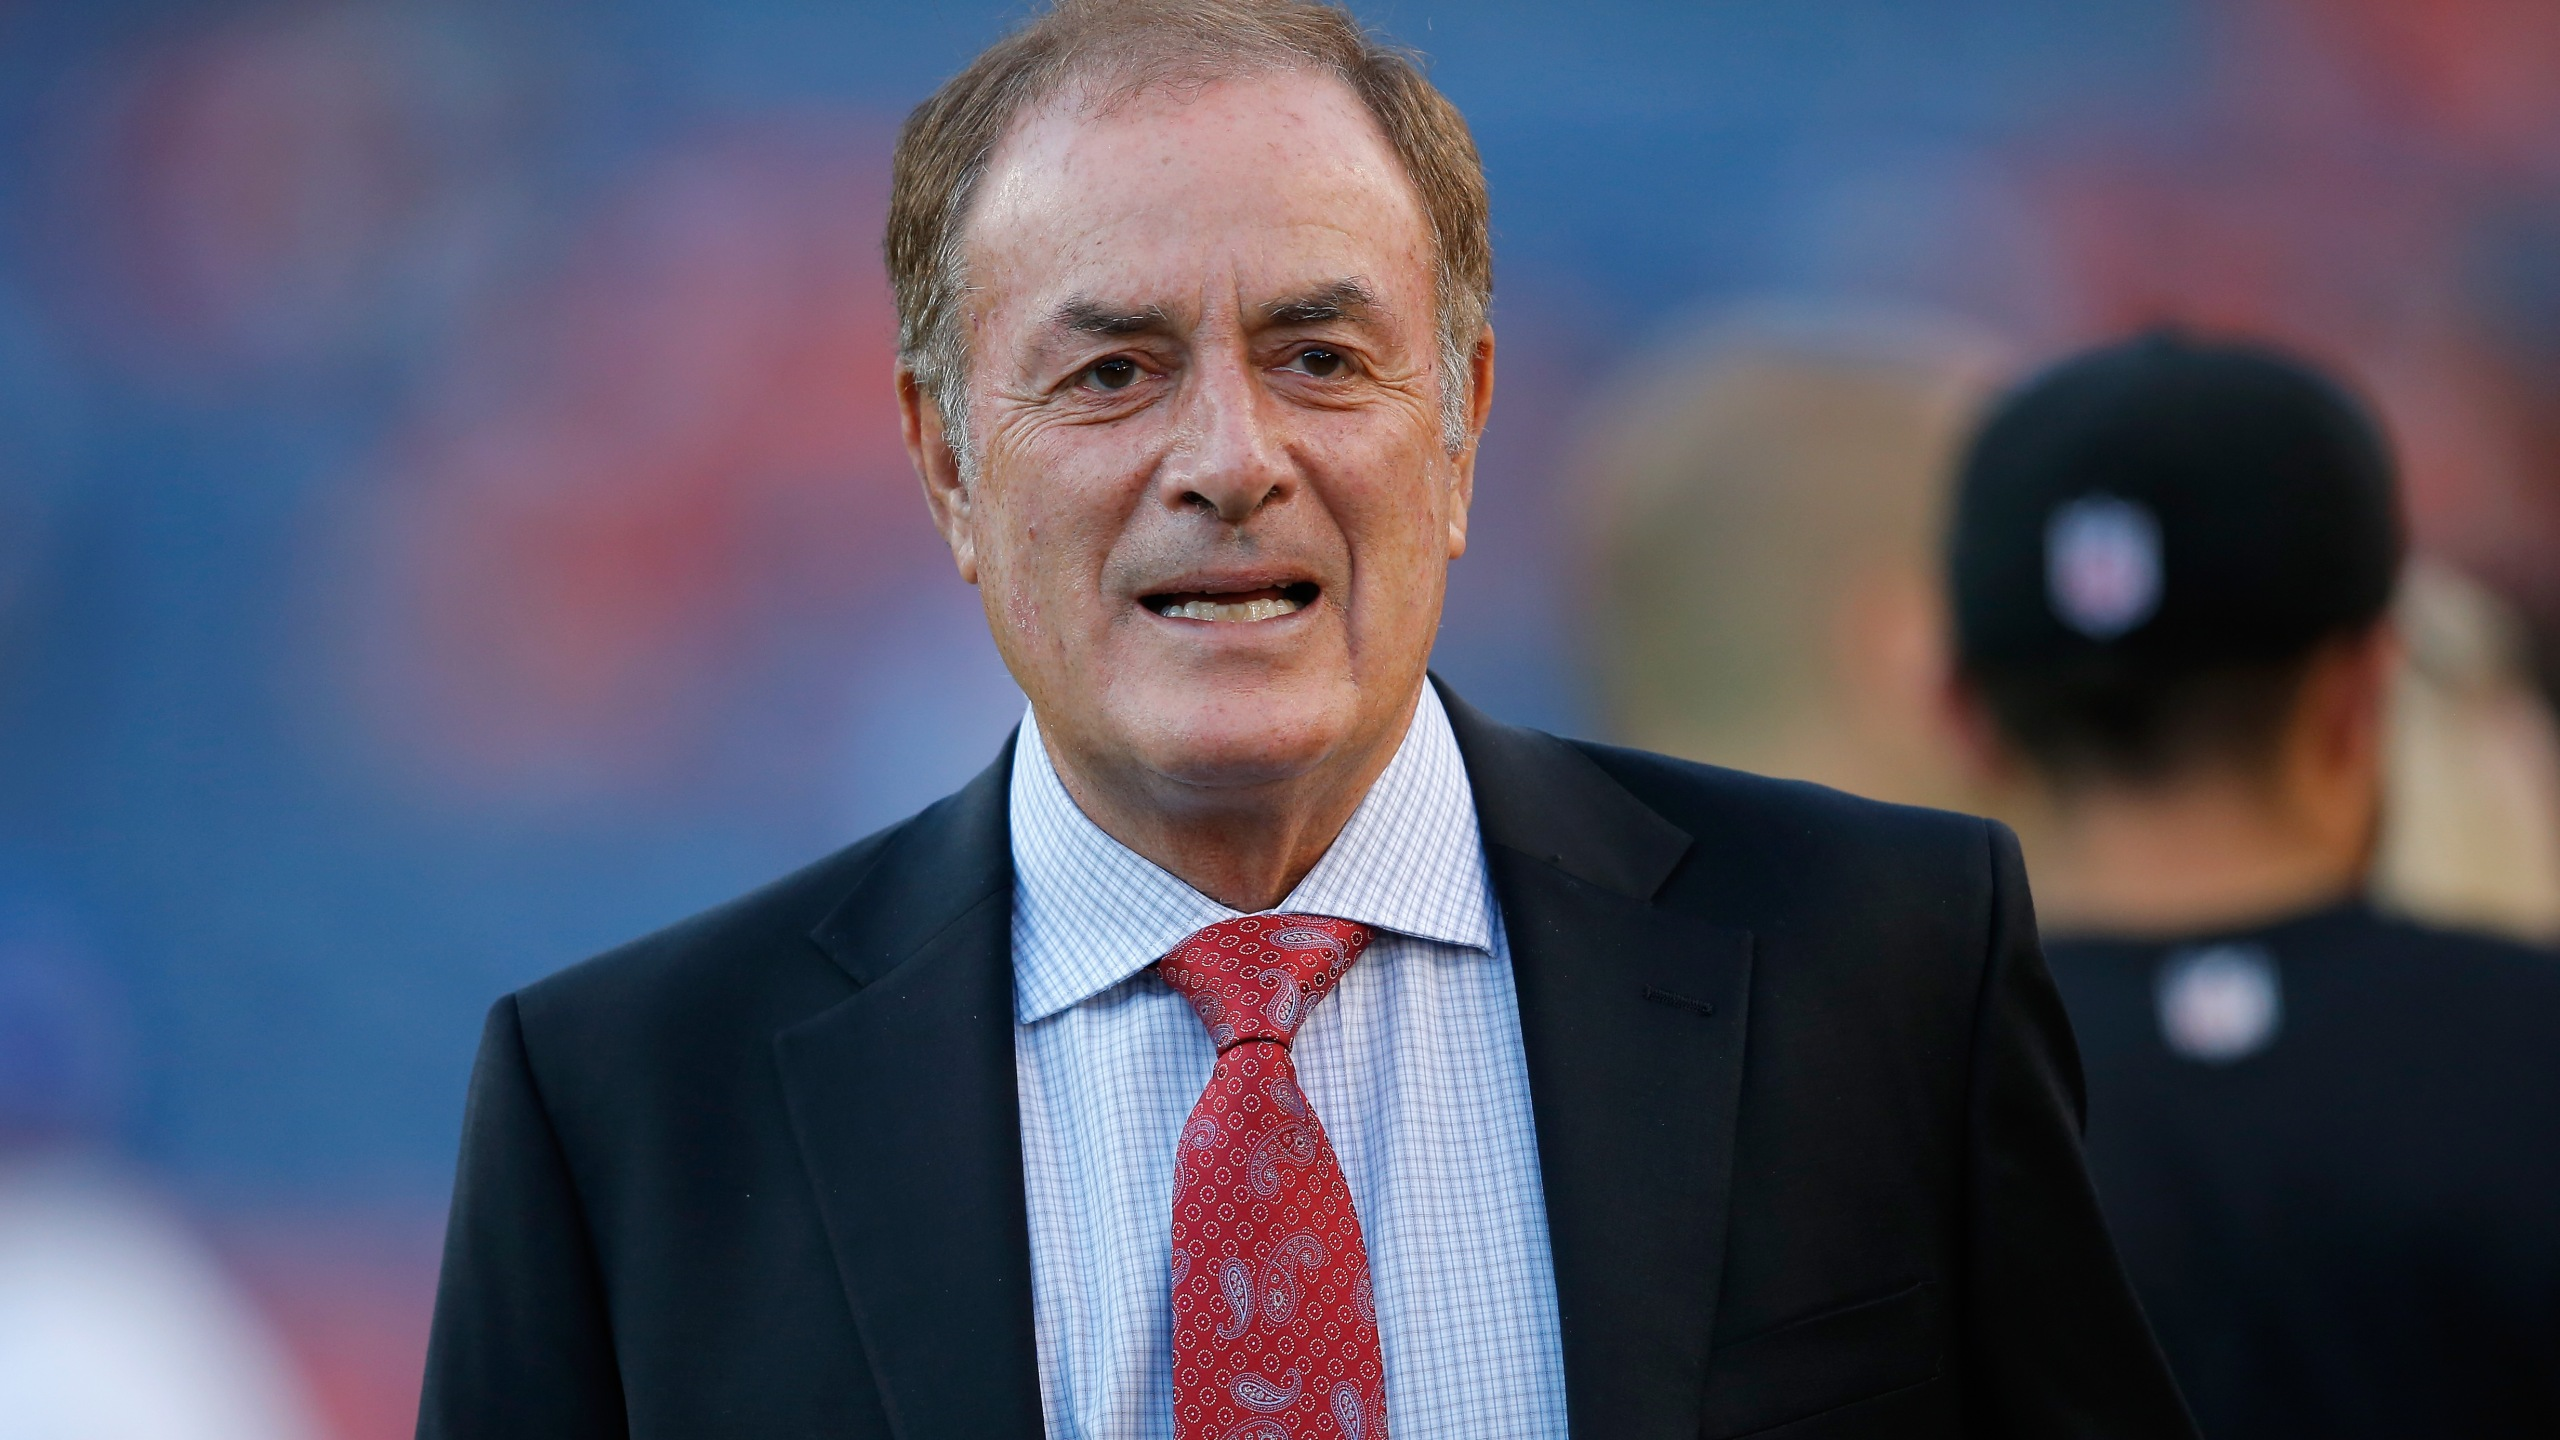 Al Michaels of NBC Sports works the game between the San Francisco 49ers and the Denver Broncos at Sports Authority Field at Mile High on October 19, 2014 in Denver, Colorado. (Credit: Doug Pensinger/Getty Images)